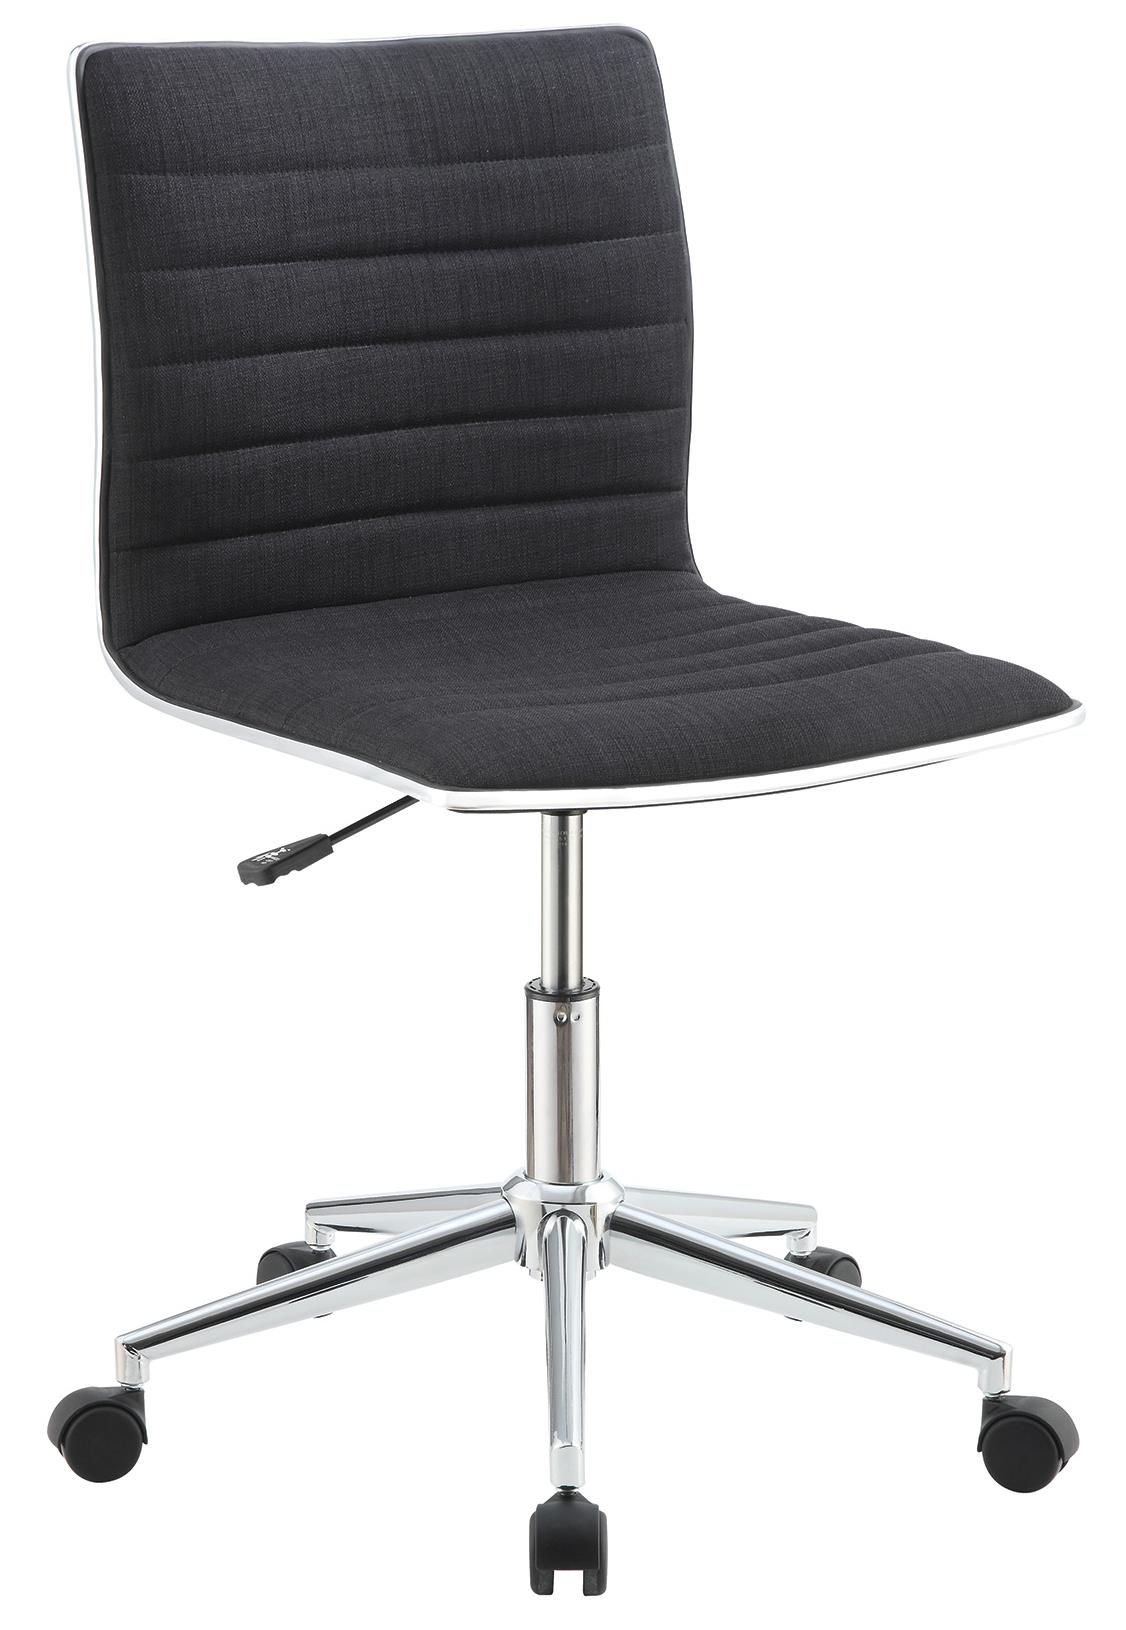 products_coaster_color_office chairs_800725-b1